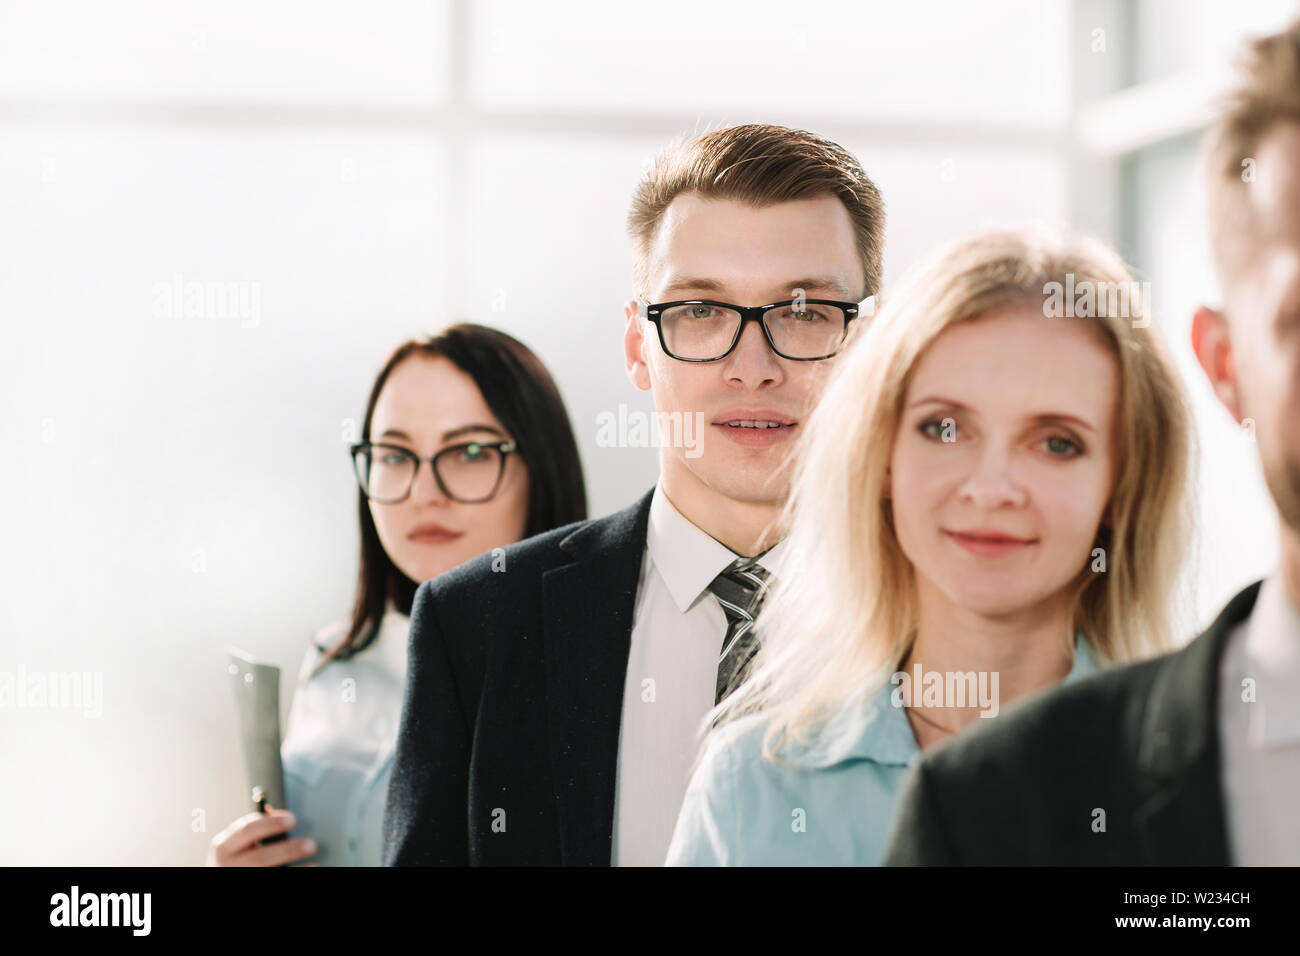 close up. professional staff of the company standing together. the concept of teamwork - Stock Image